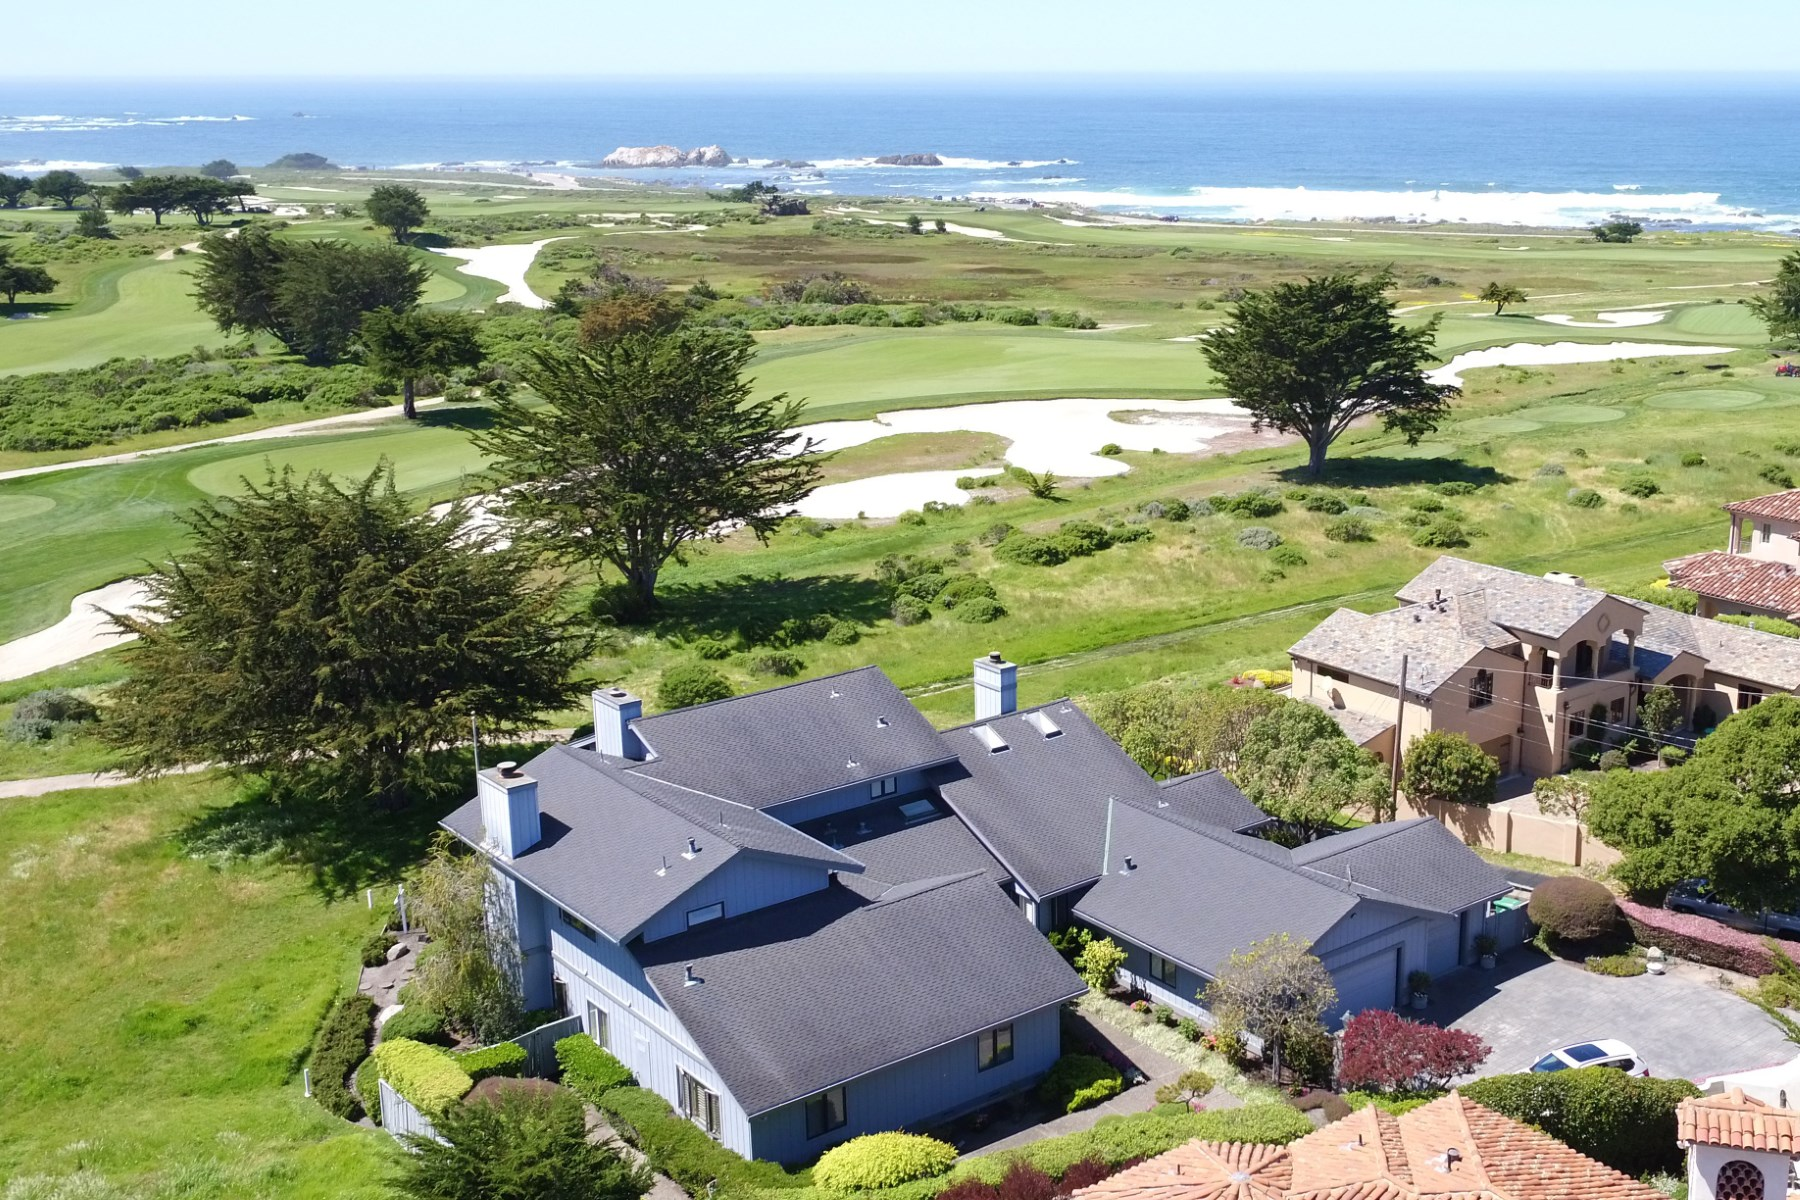 Single Family Home for Sale at Incredible Views from Incredible Home 1038 Rodeo Road Pebble Beach, California, 93953 United States